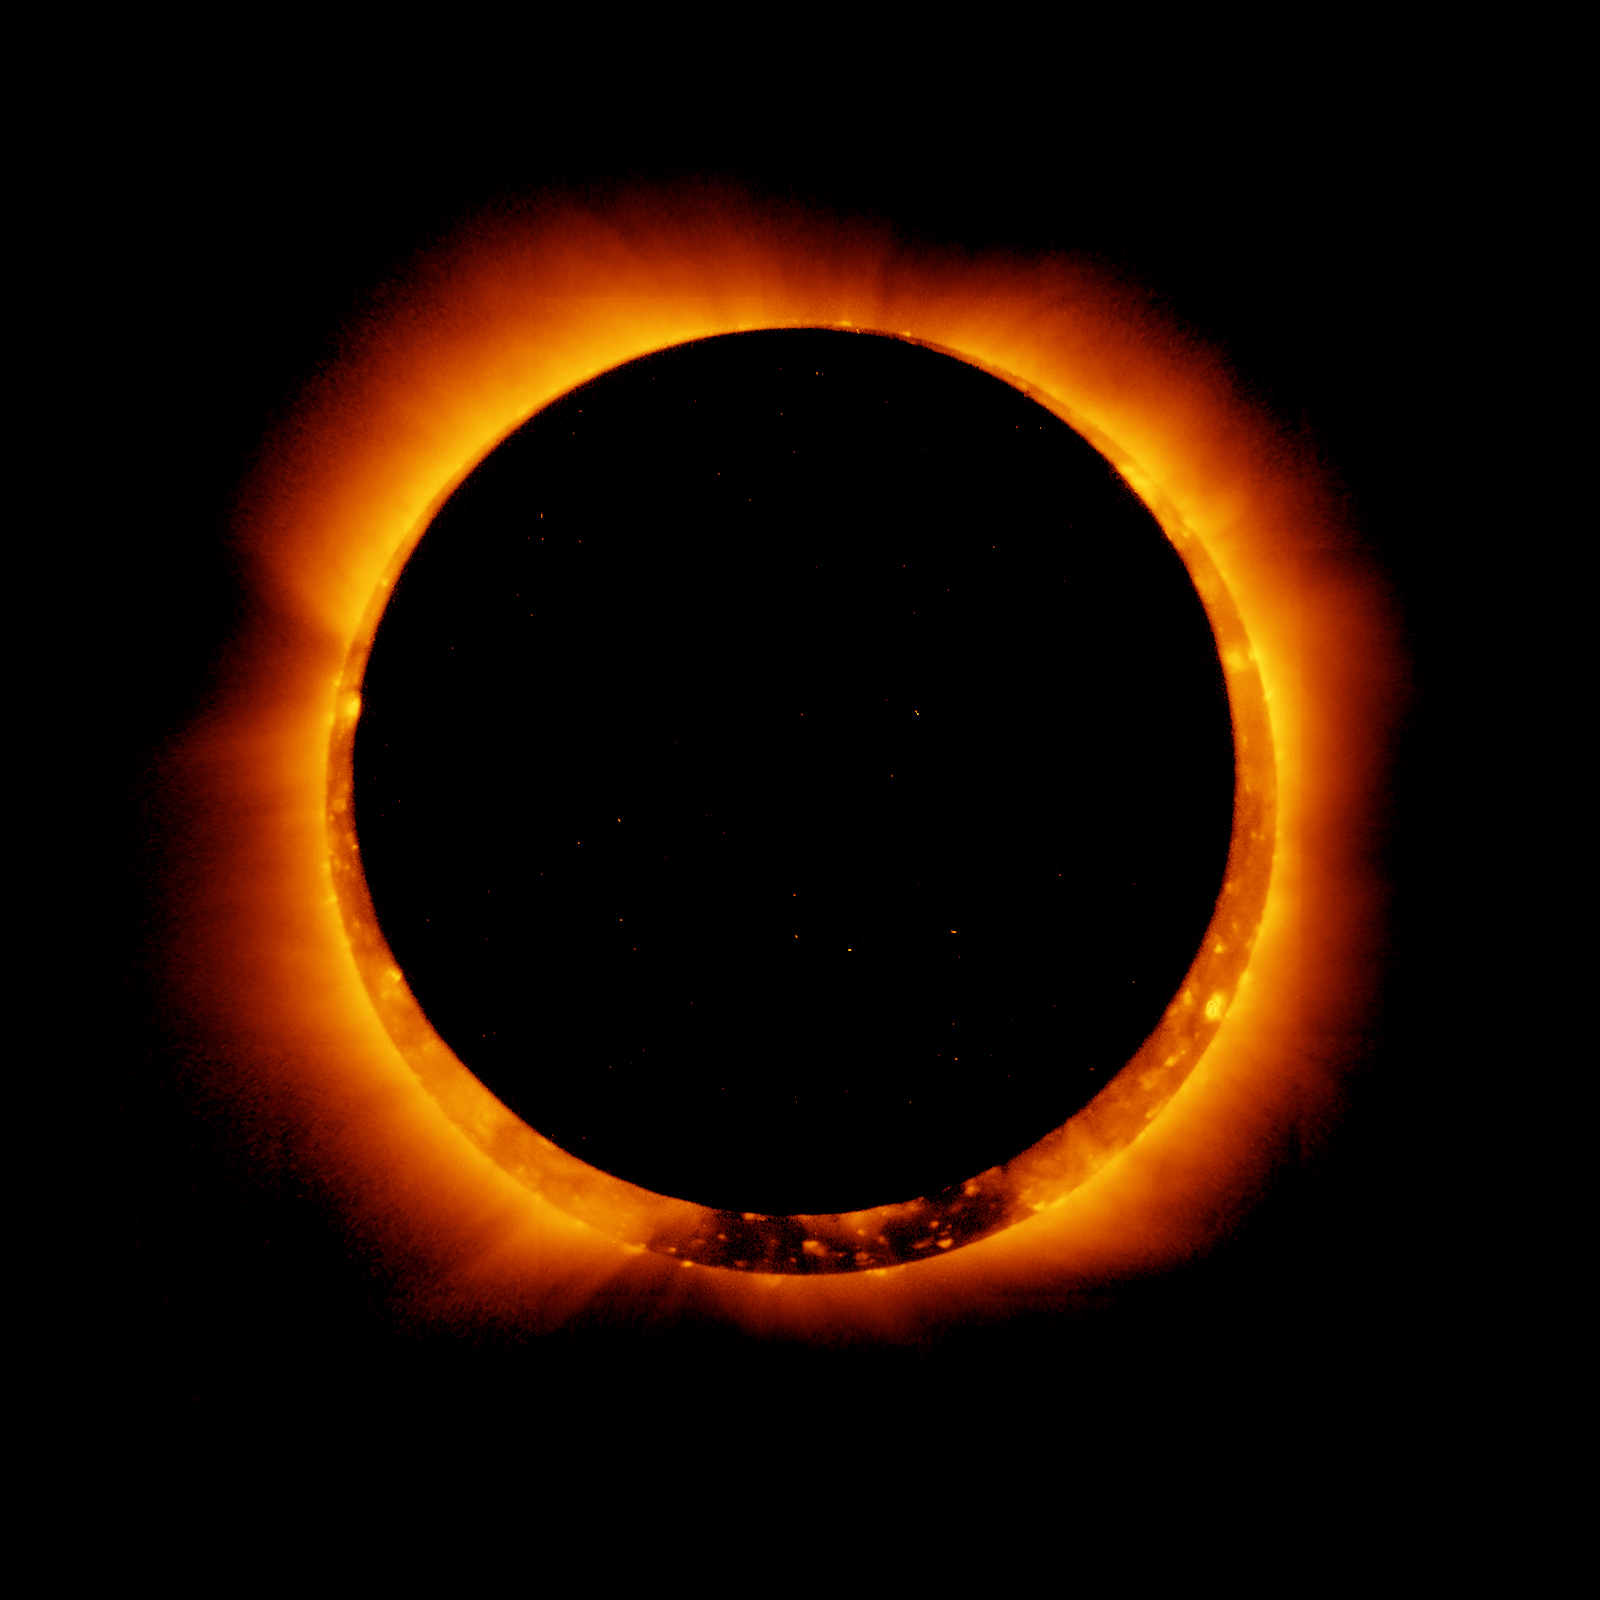 Solar Eclipse 2016 Guide: When, Where & How to See It